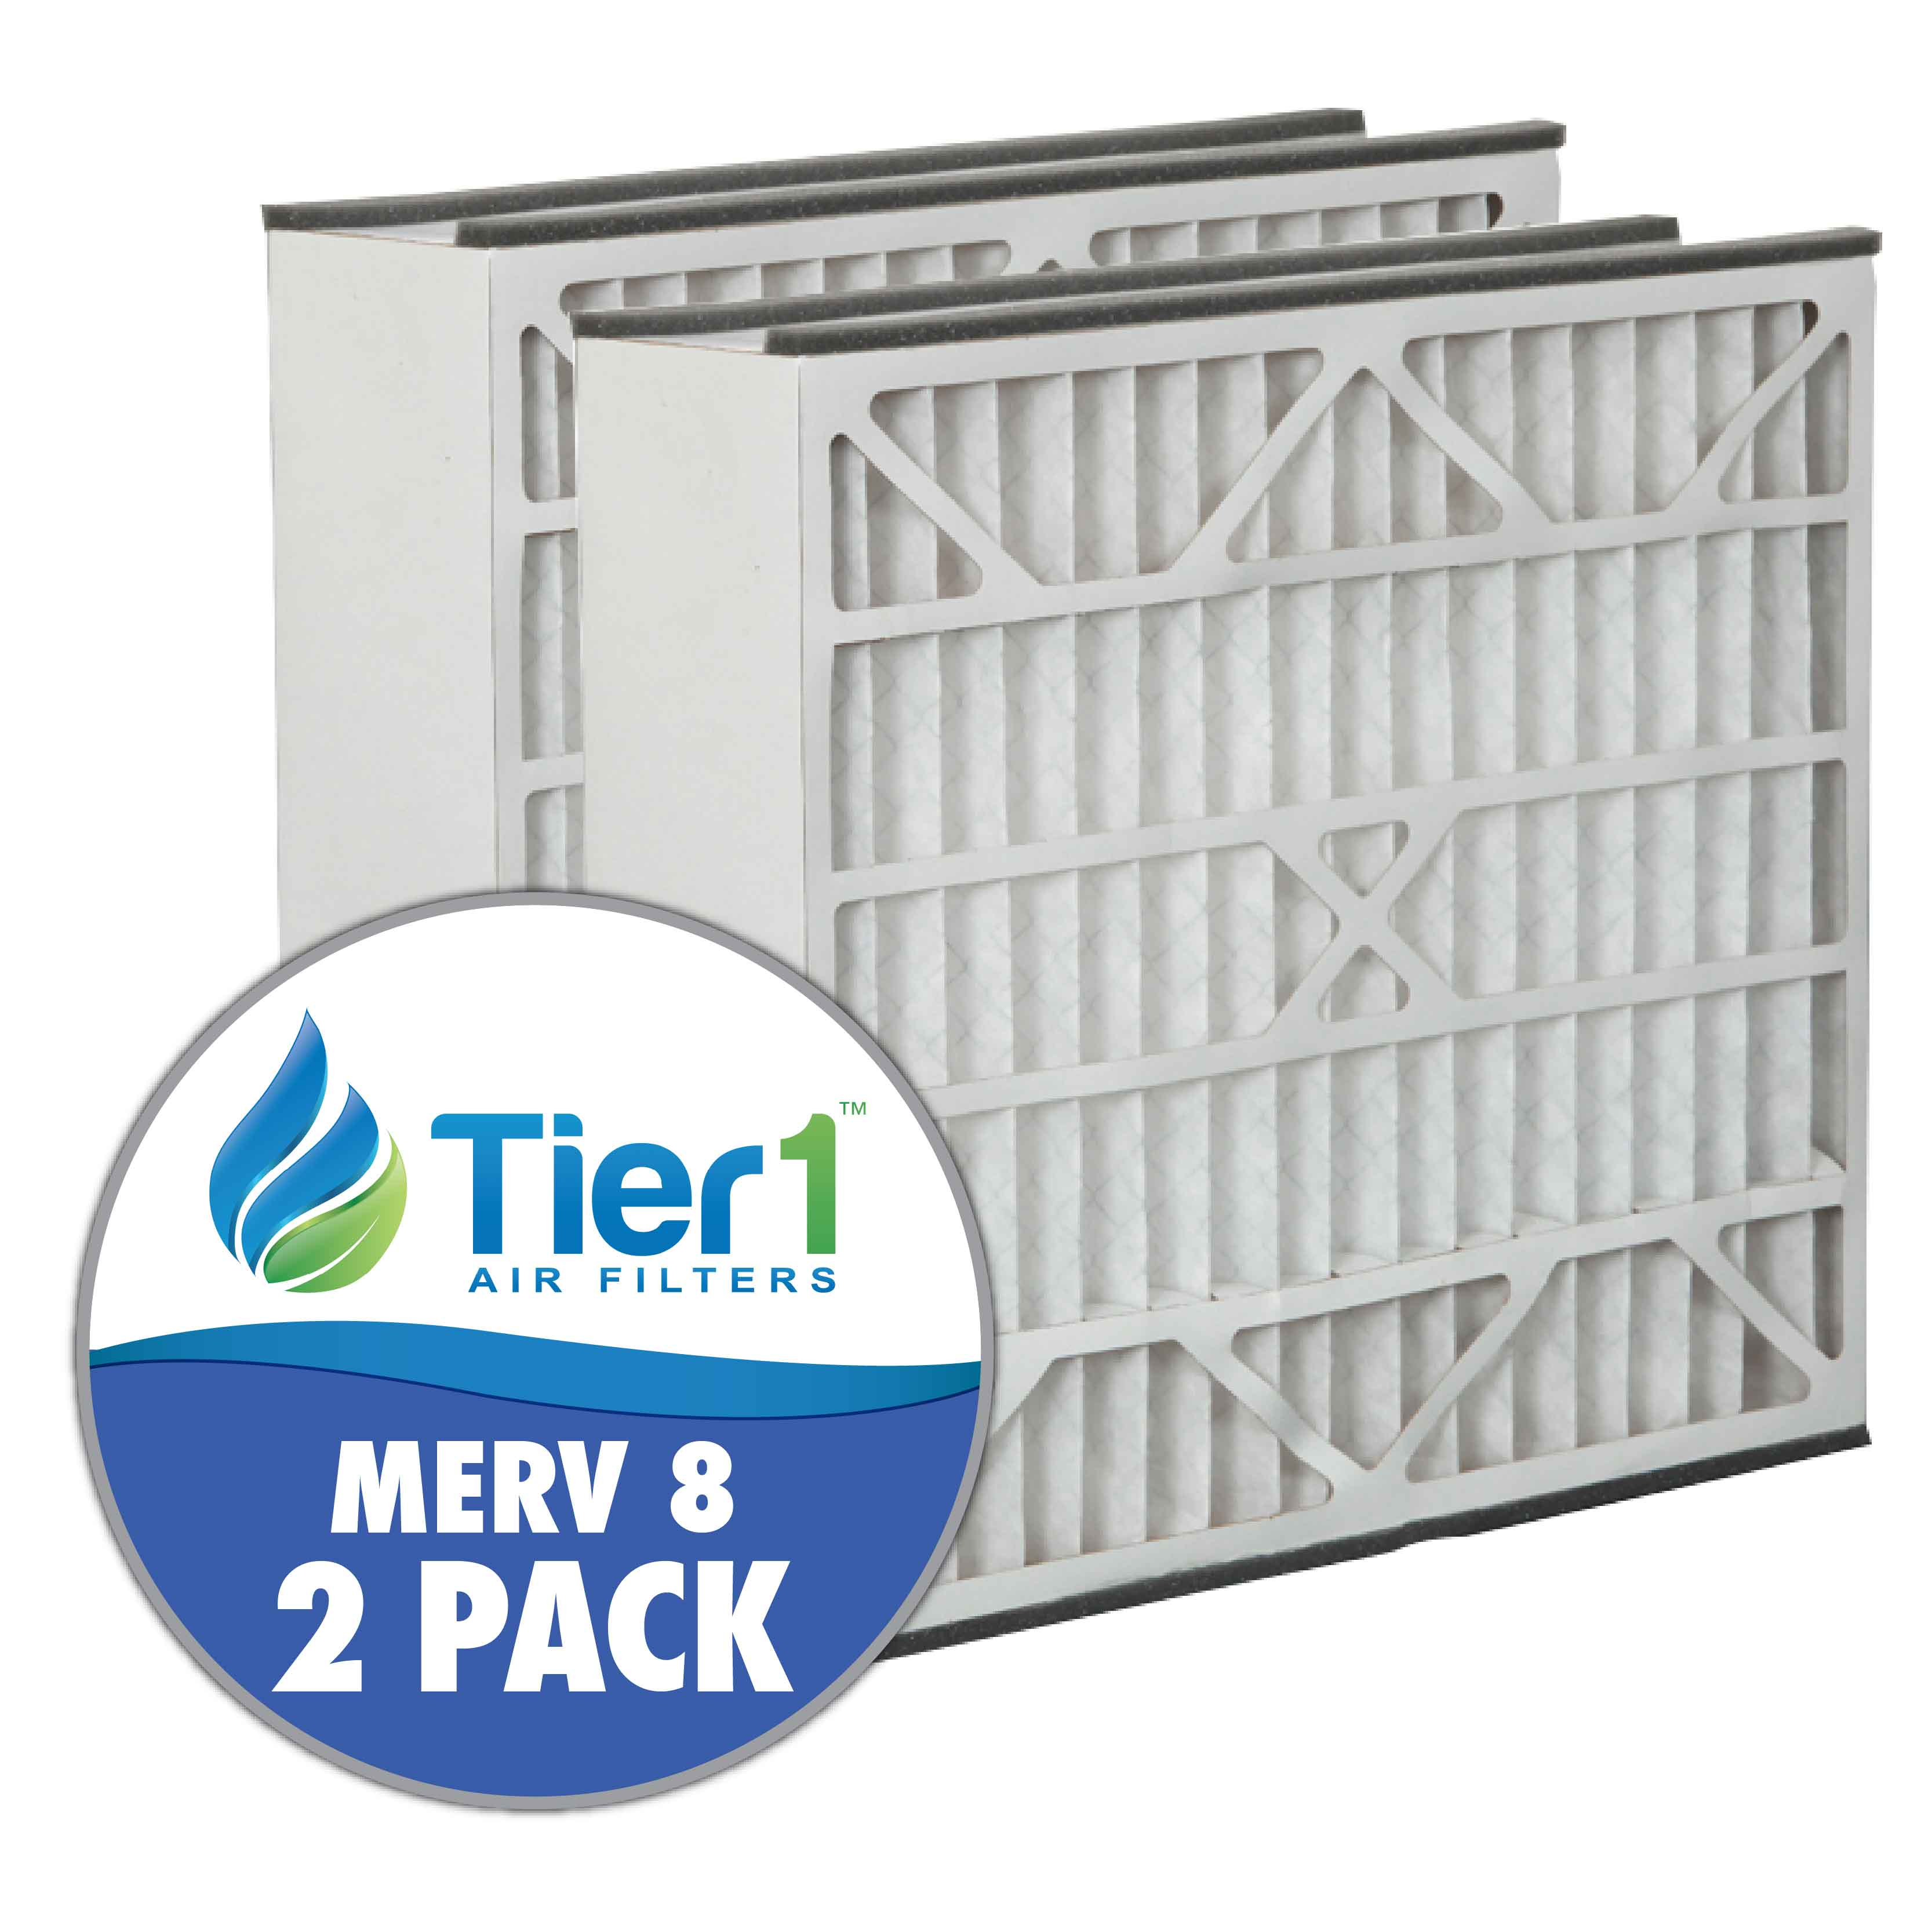 Tier1 brand replacement for Skuttle #000-0448-001 - 16 x 25 x 5 - MERV 8 (2-Pack) TIER1-DPFR16X25X5DSL